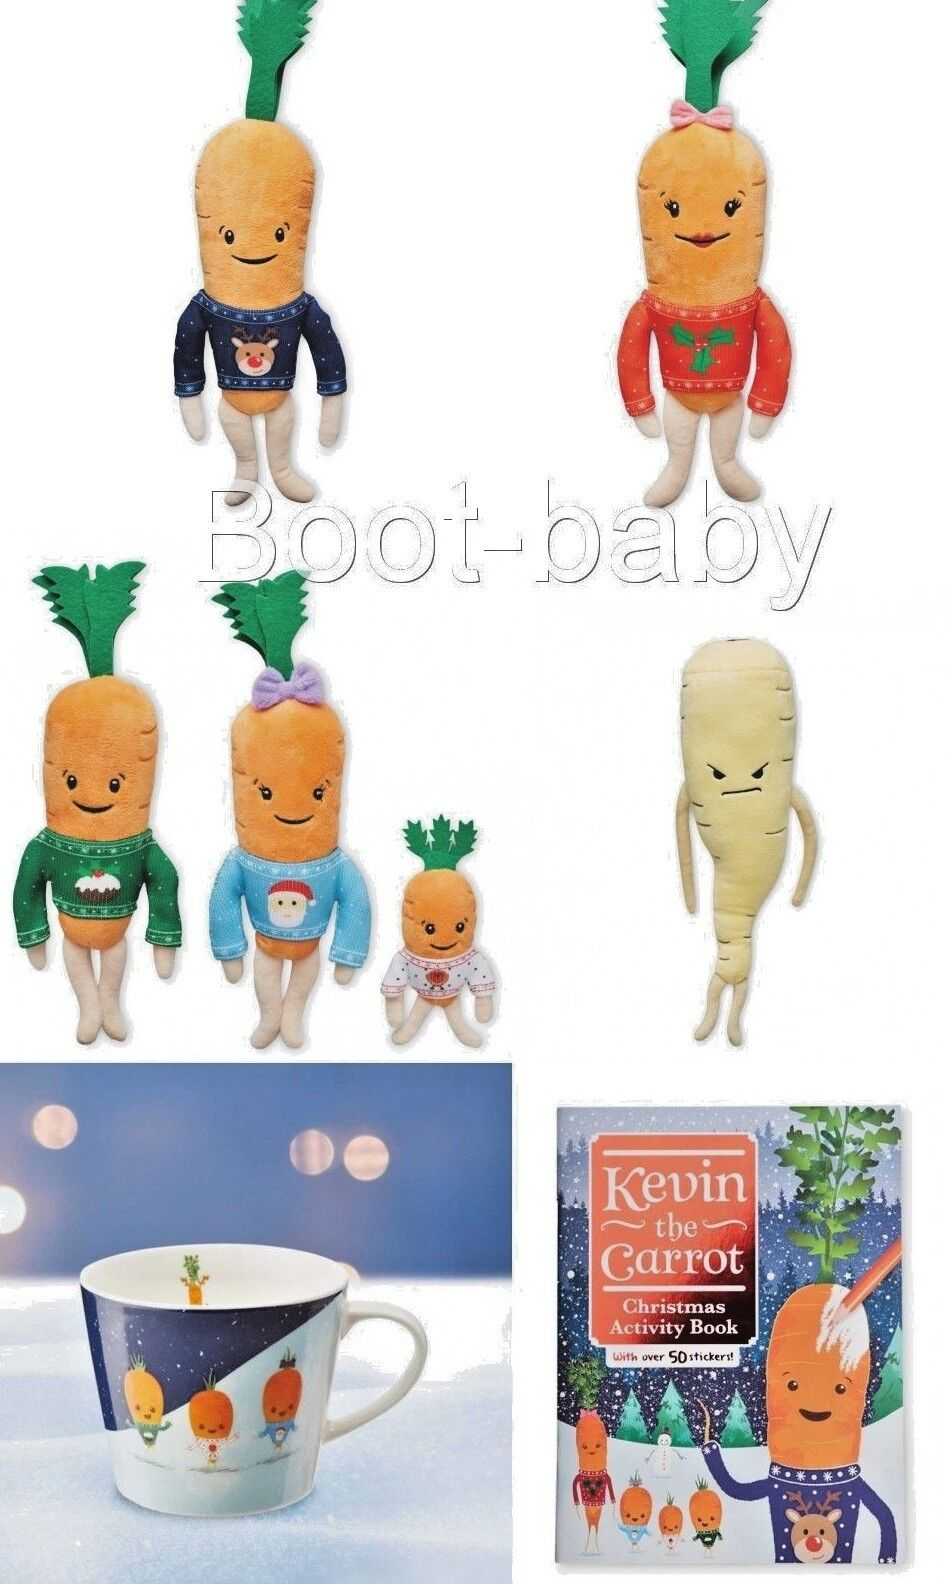 Aldi 2018 Kevin The Carred And Family Including Pascal The Parsnip Full Set BNWT